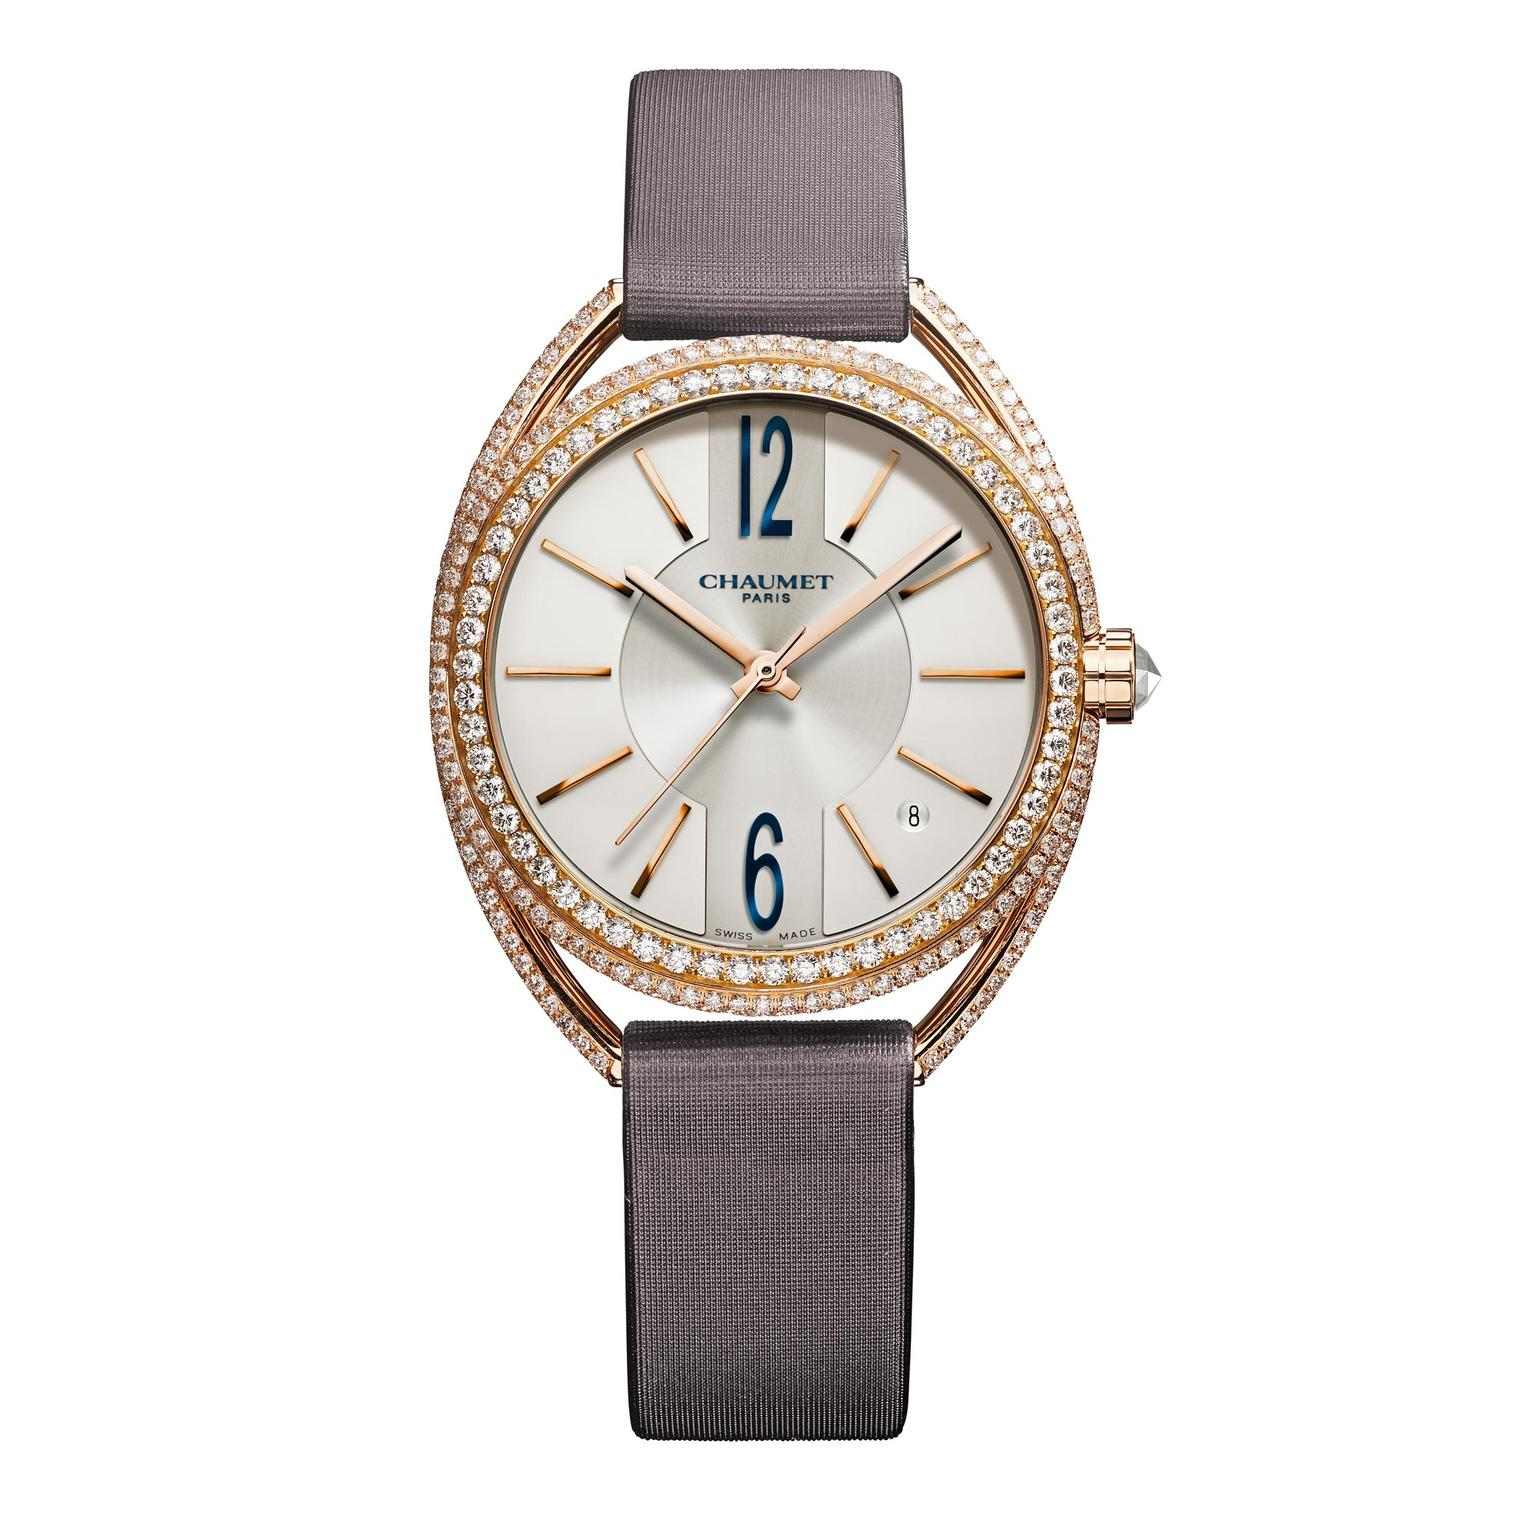 Liens de Chaumet pink gold and diamond watch